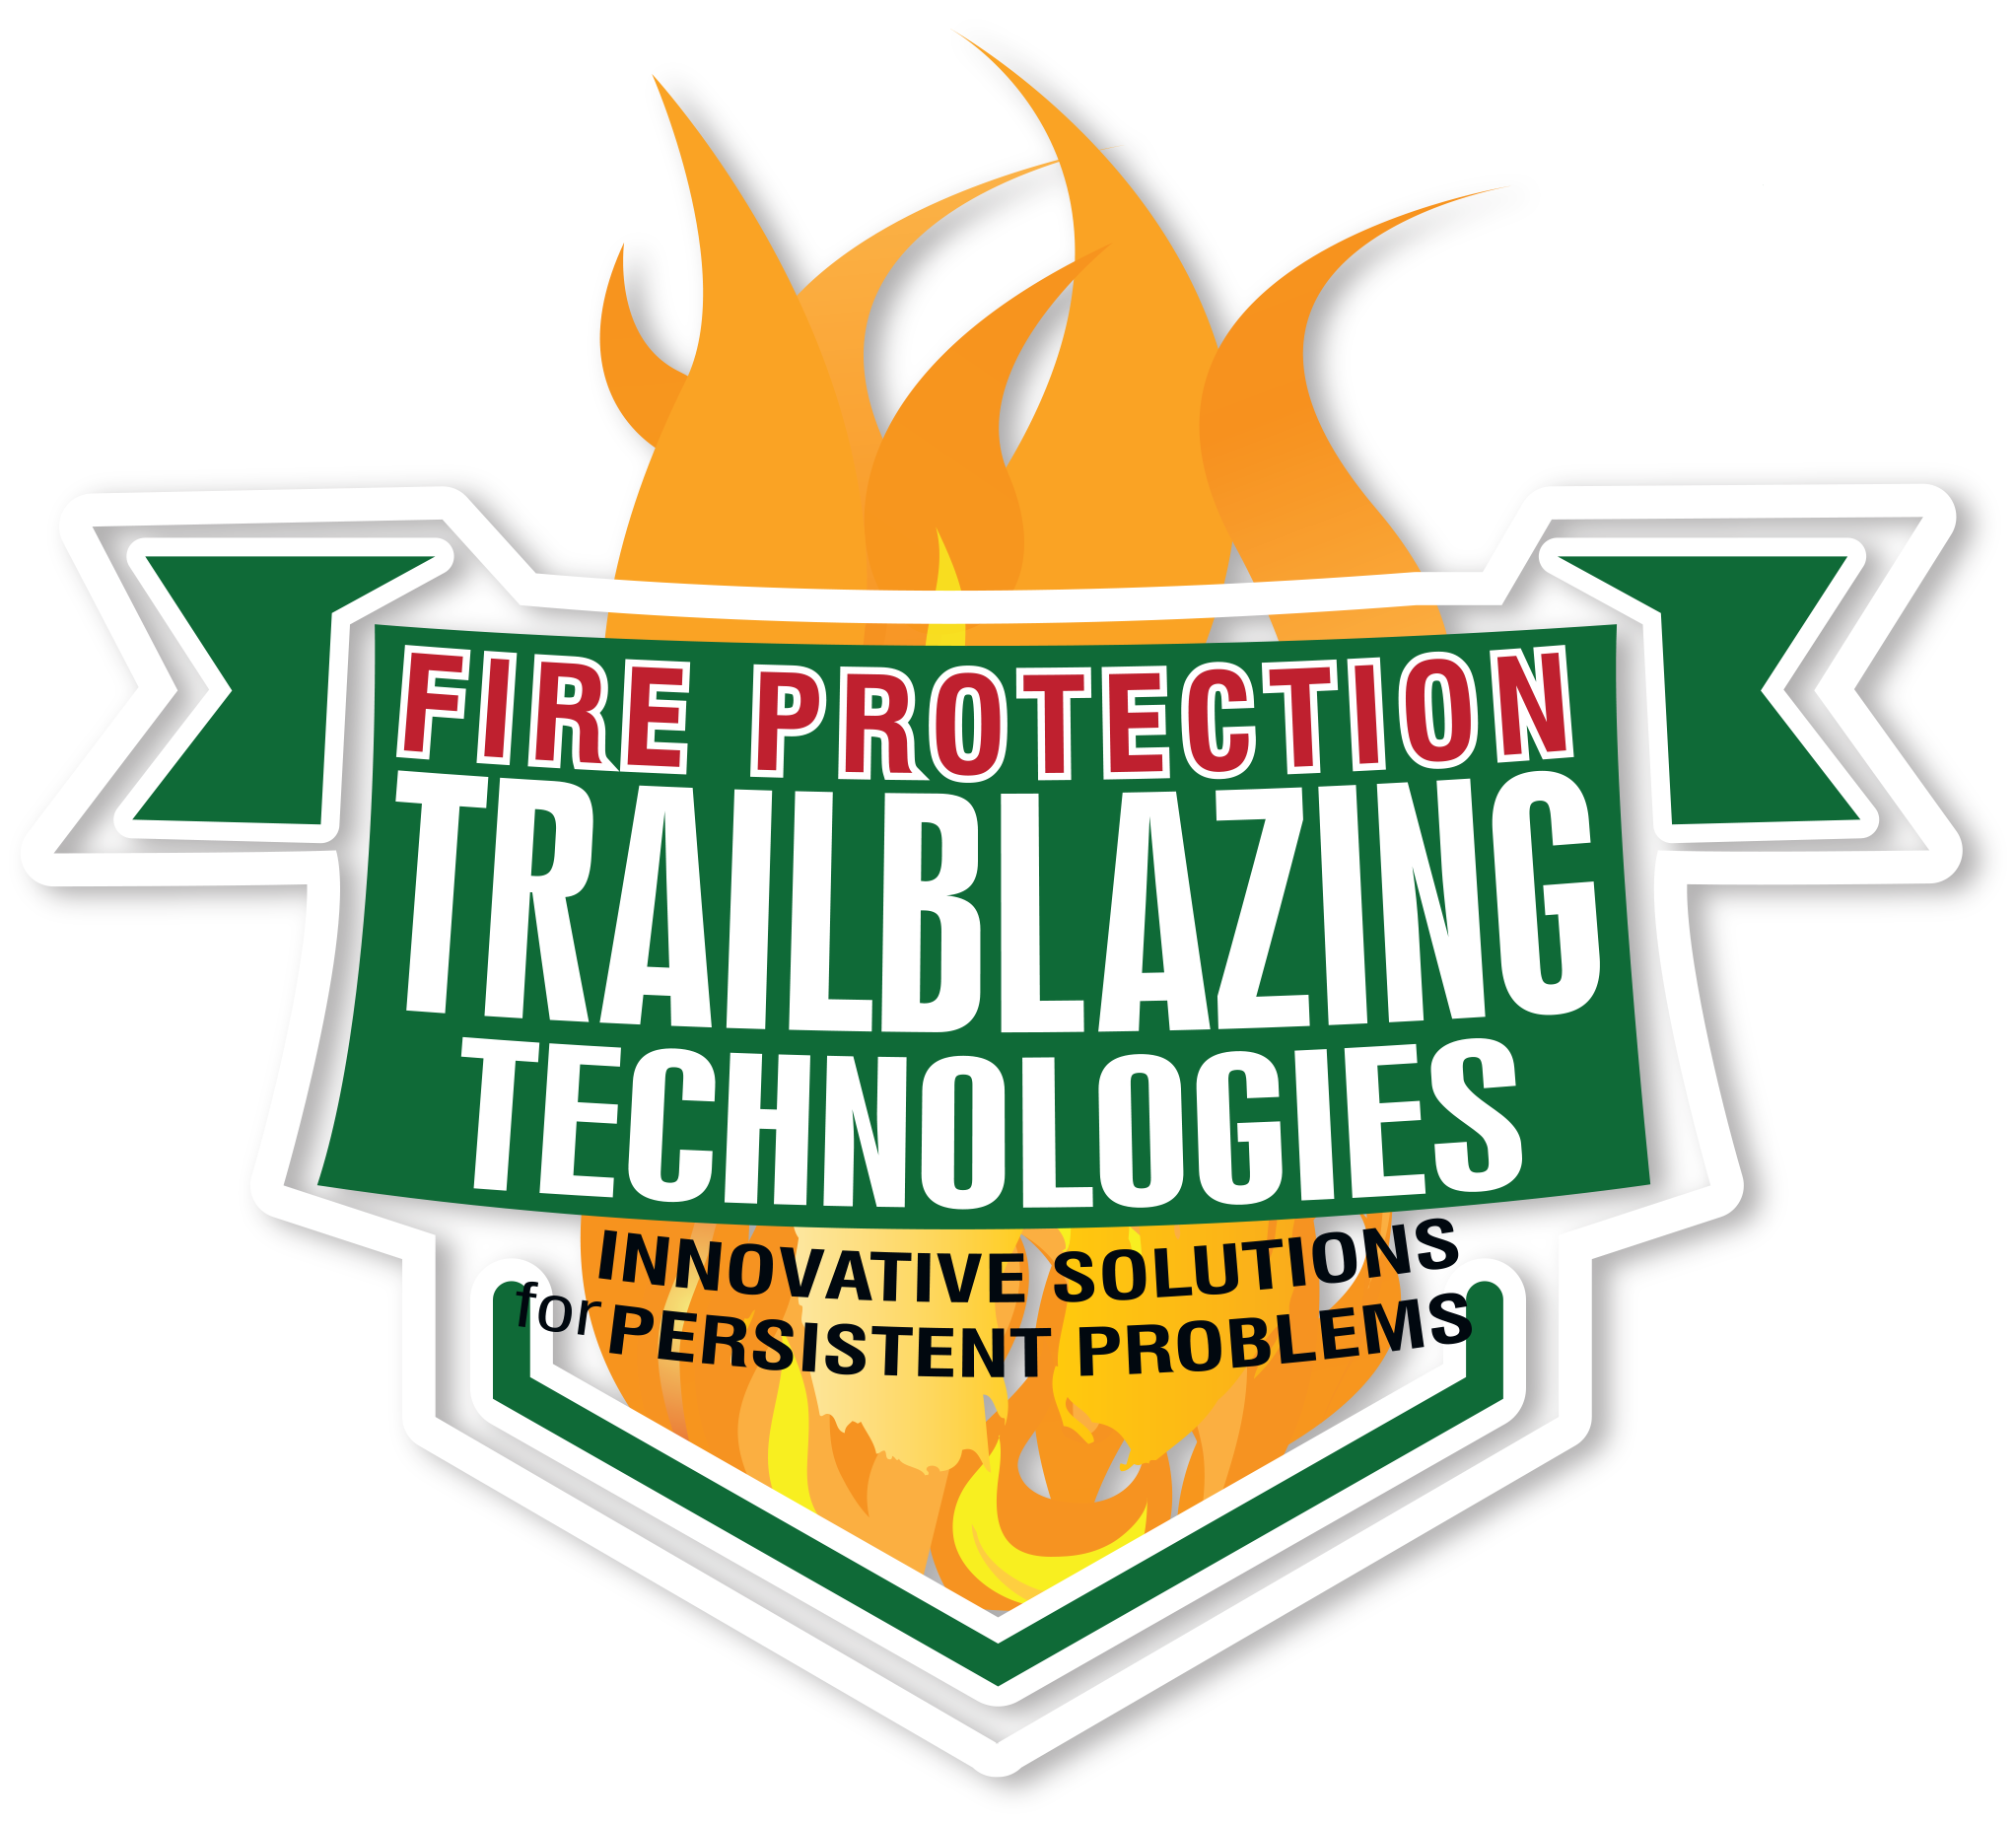 Fire Protection Trailblazing Technologies Innovative Solutions for Persistent Problems